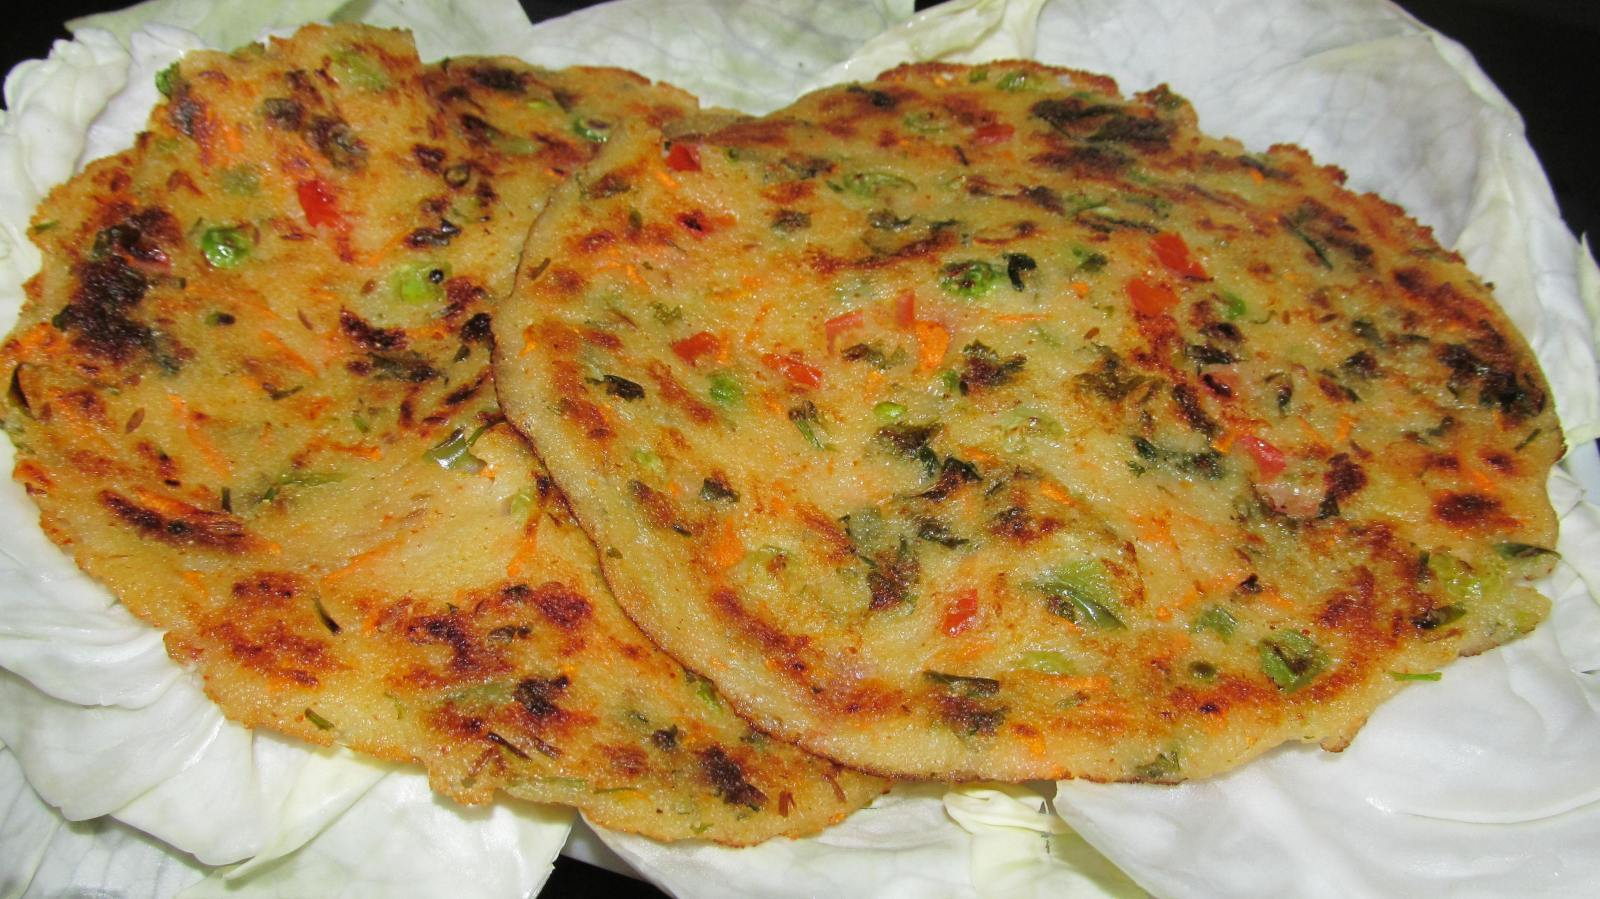 breakfast recpeswithout eggd in hindi